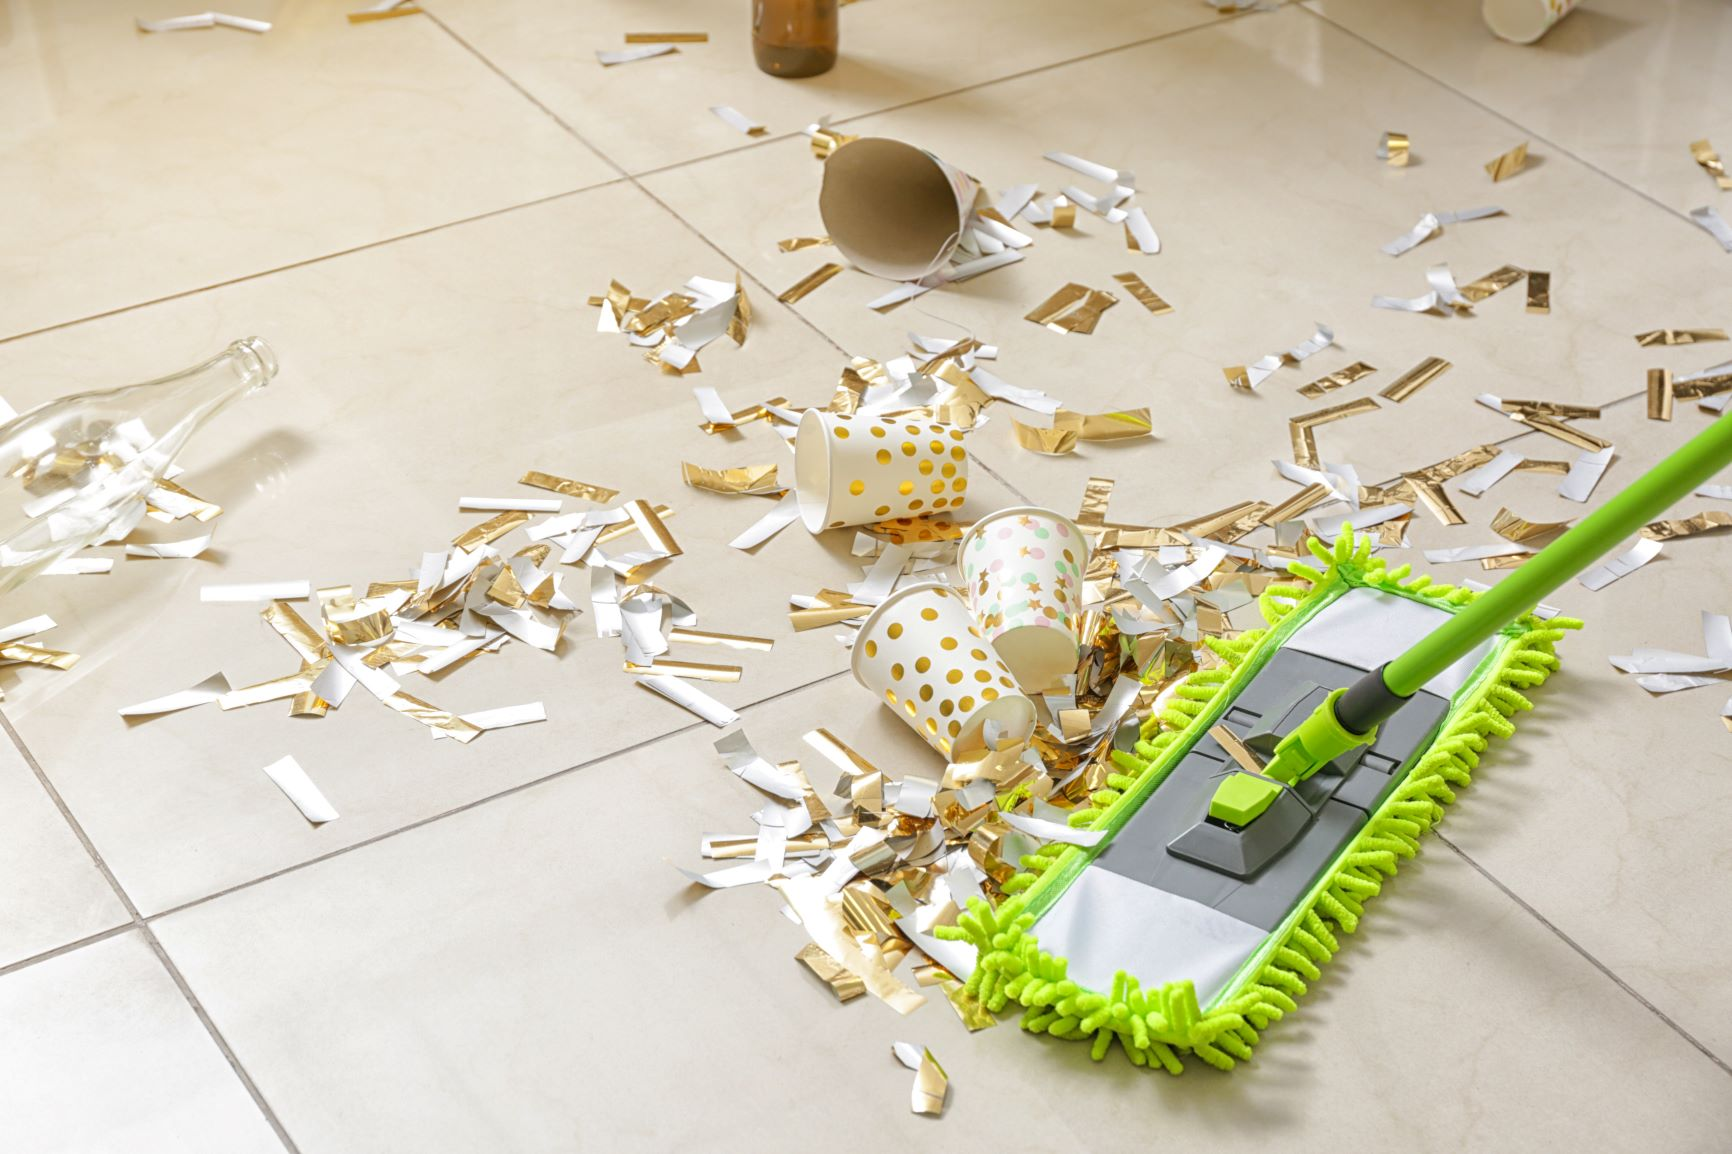 mopping up mess on floor after party